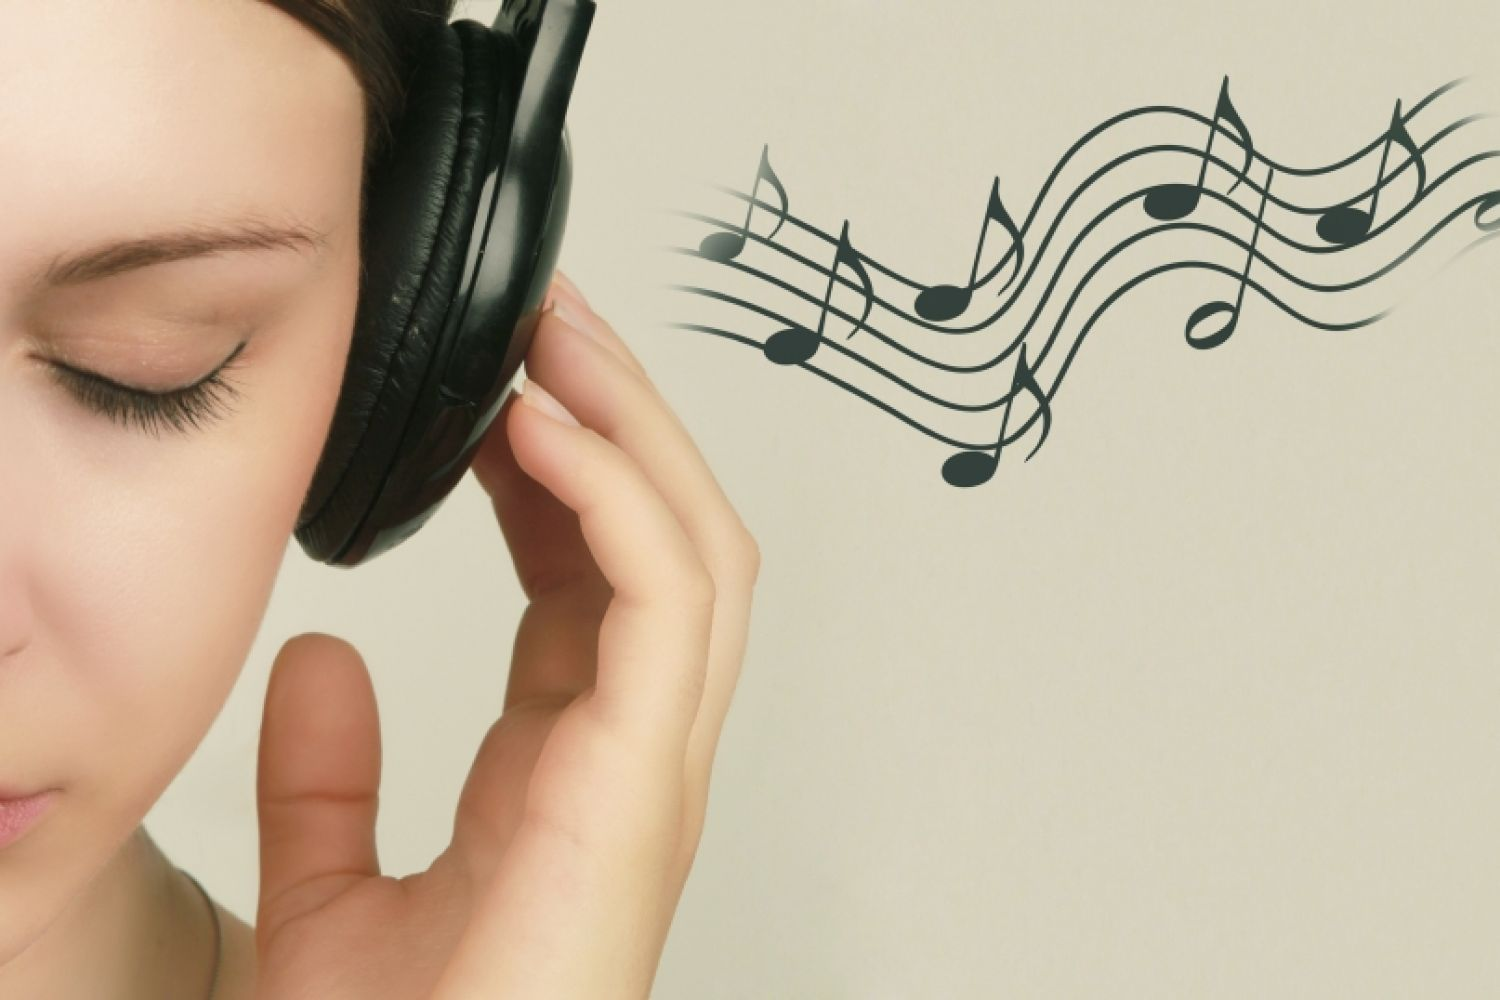 Memorizing Music: The Two Most (and the Two Least) Efficient Strategies